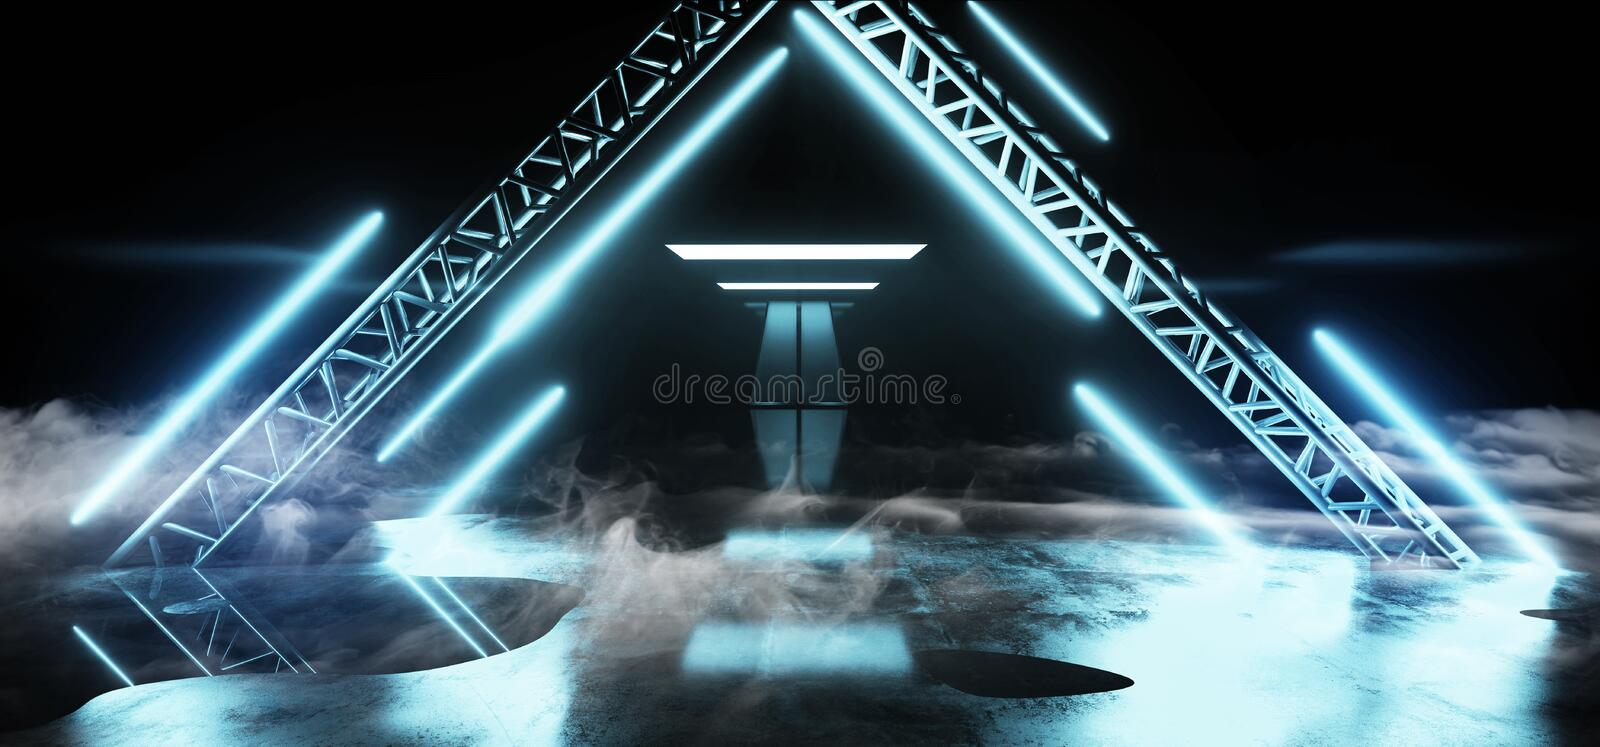 Smoke Fog Empty Neon Studio Construction Triangle Vibrant Sci Fi Wet Stage Dance Lights Glowing Blue White Reflecting On Grunge. Concrete Big White Glowing royalty free illustration